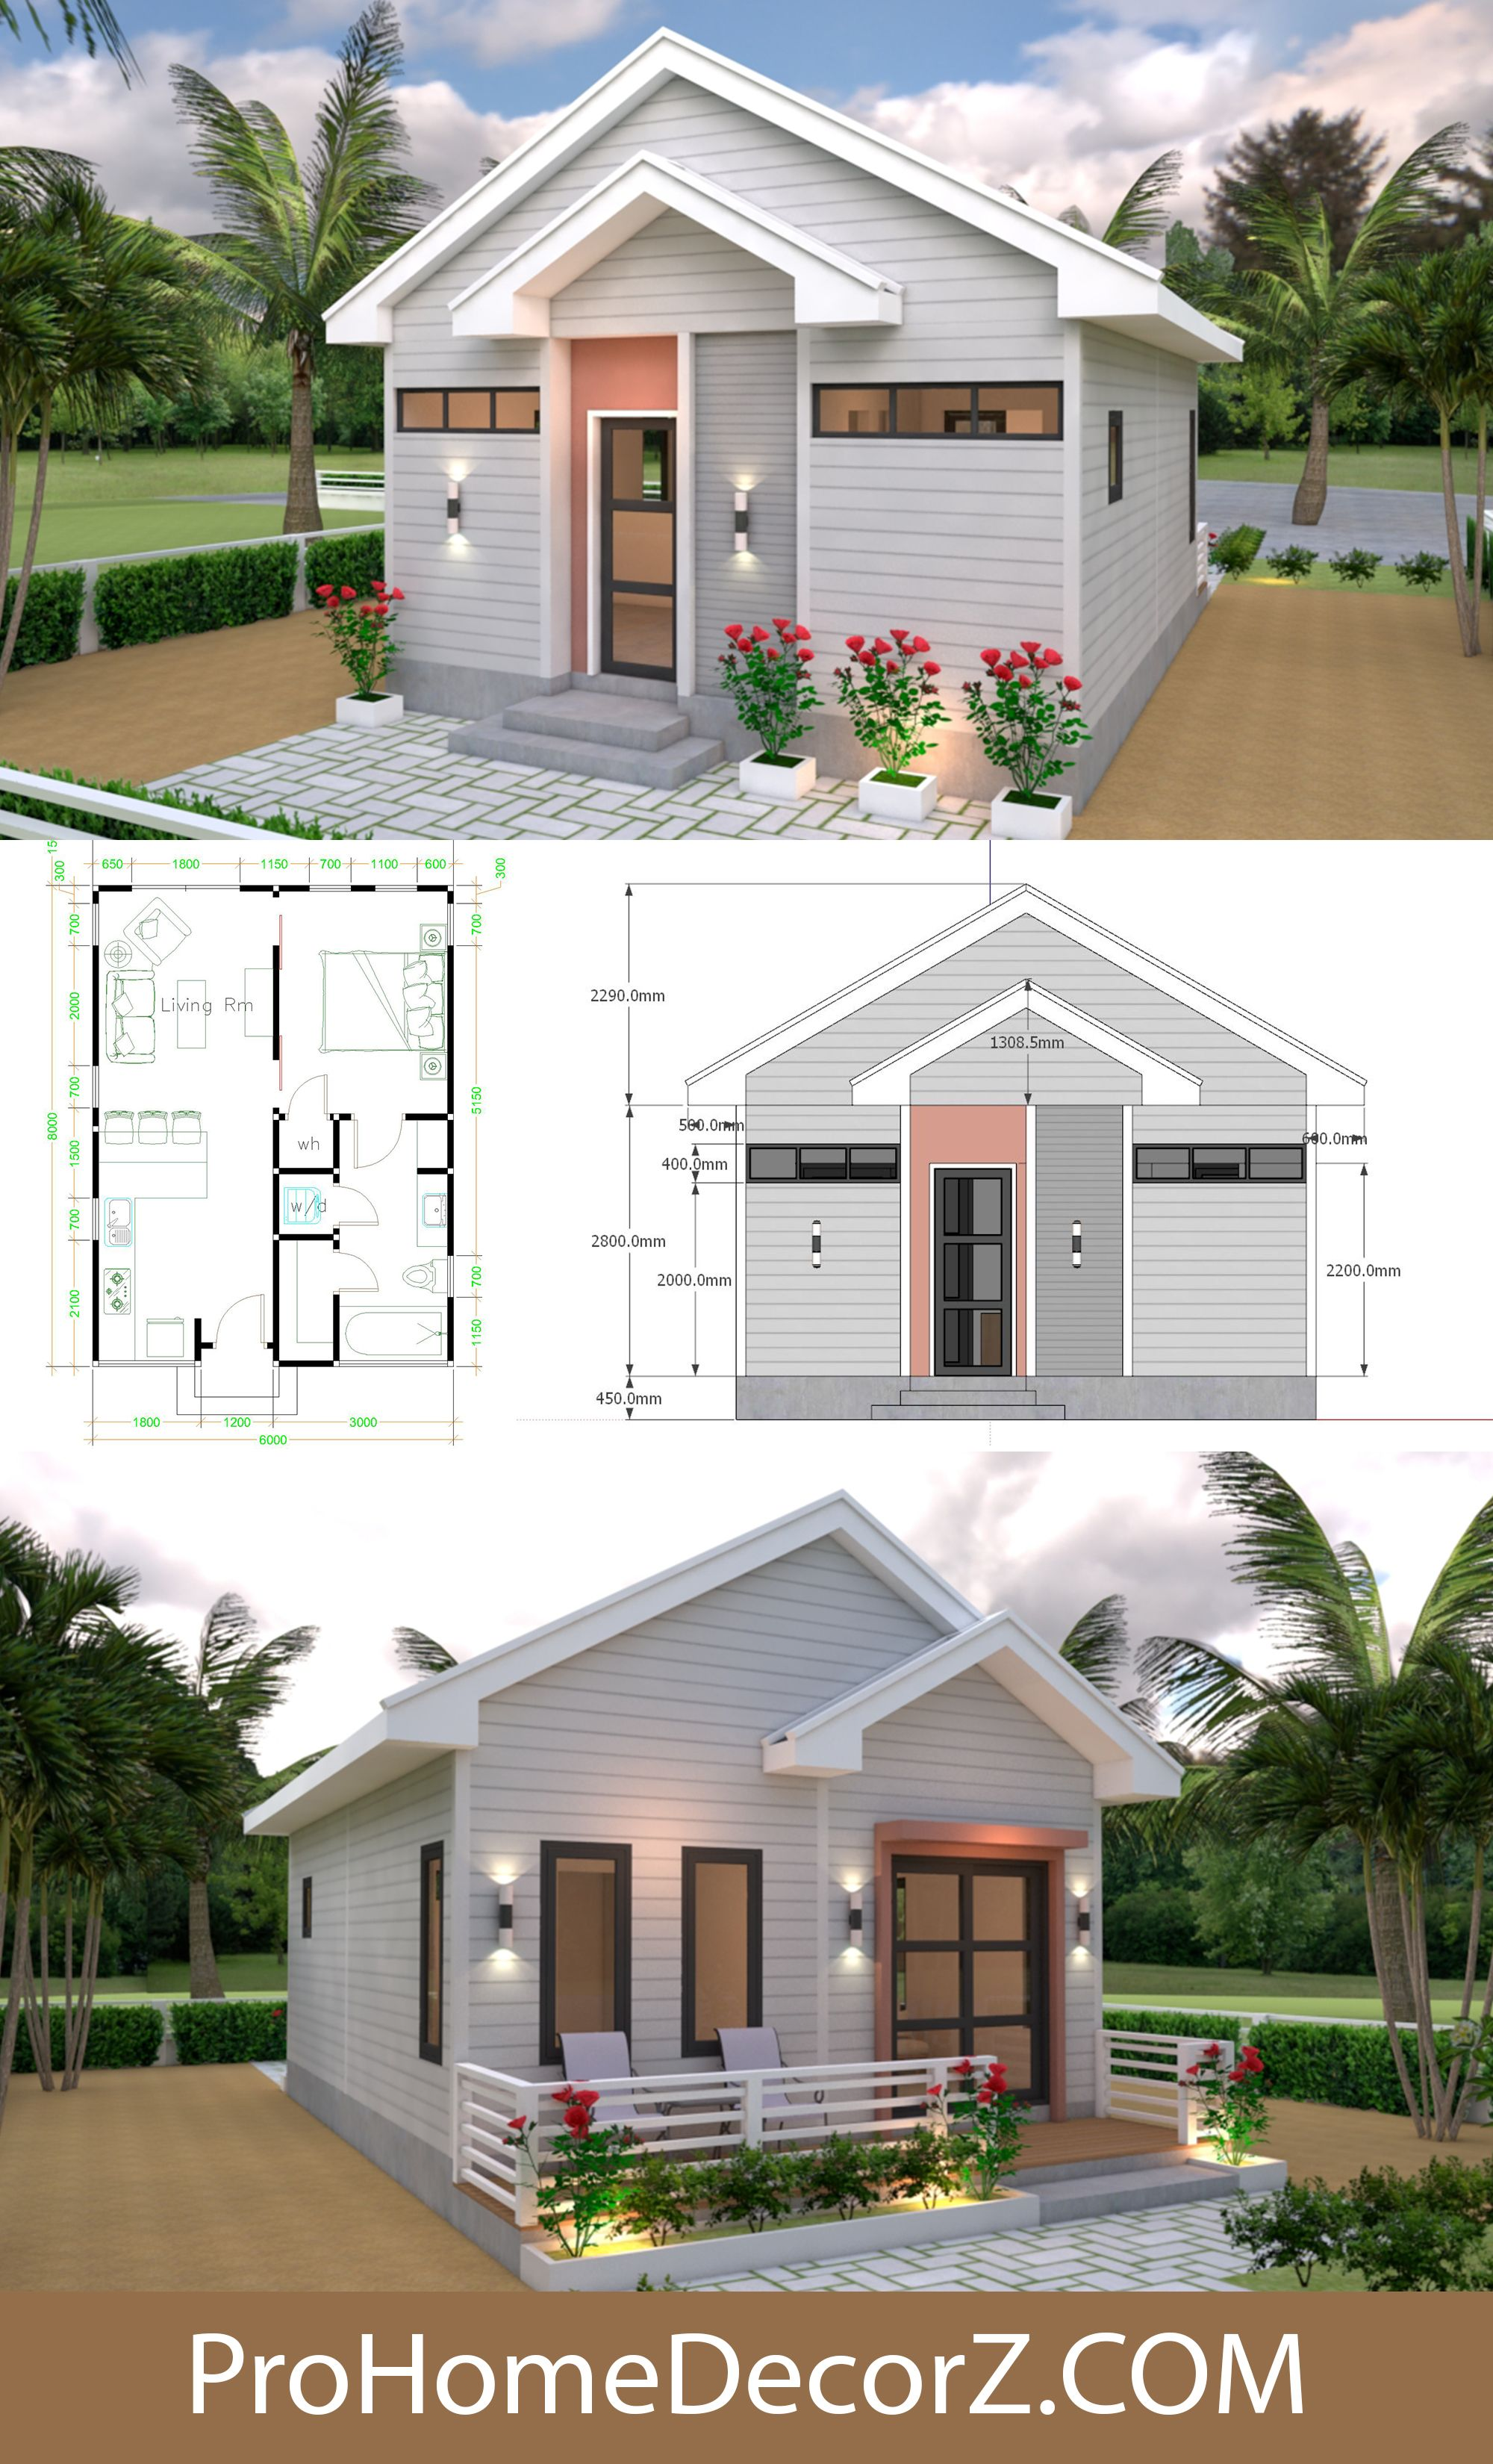 Small House Designs 6x8 Gable Roof Full Plans 48sq M Small House Design House Design Small House